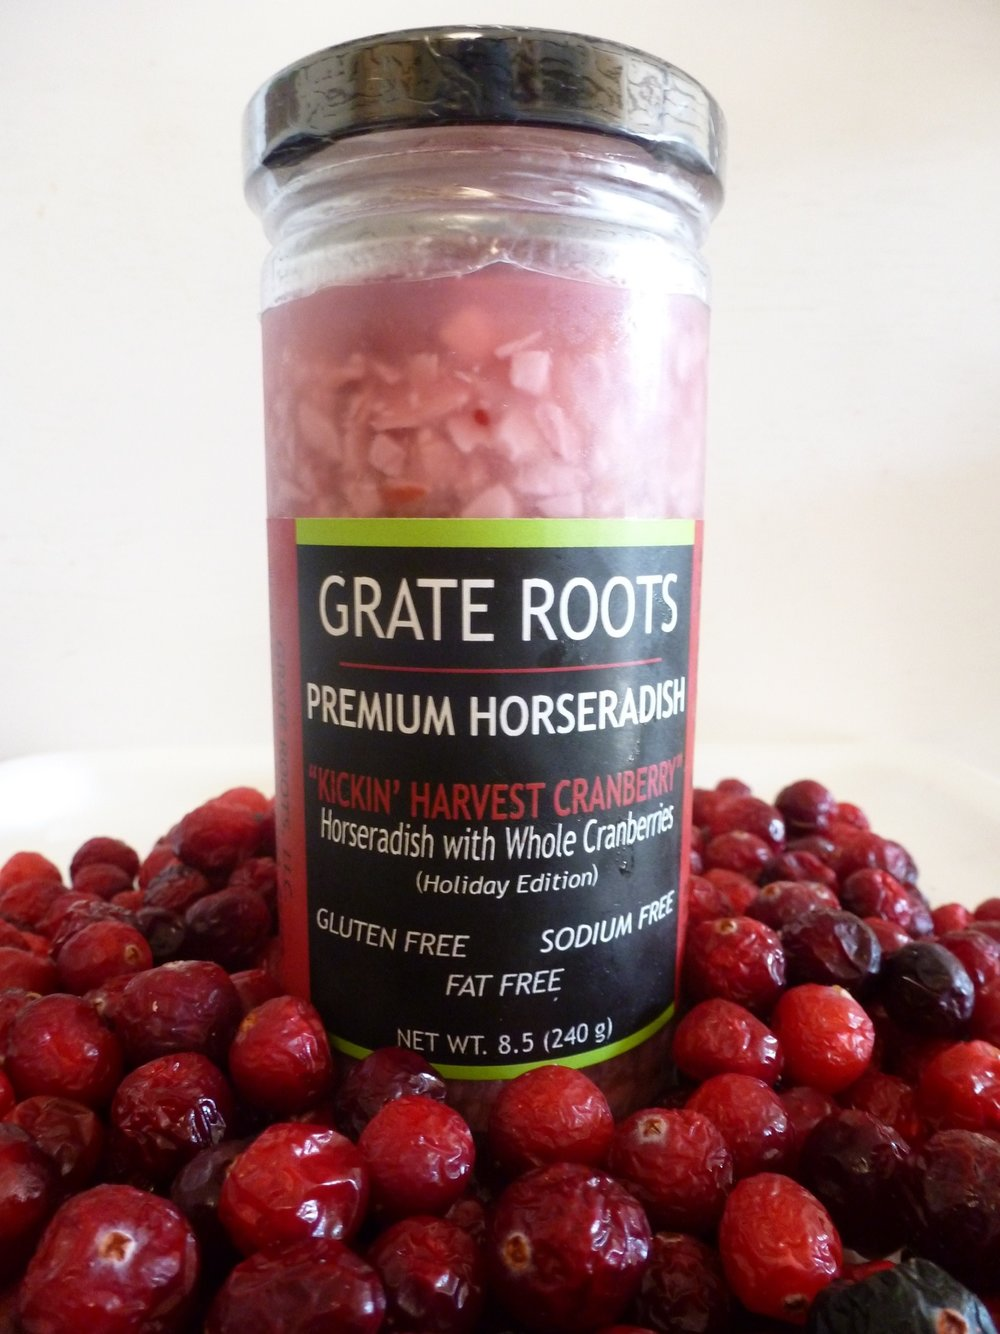 Grate Roots Cranberry Horseradish